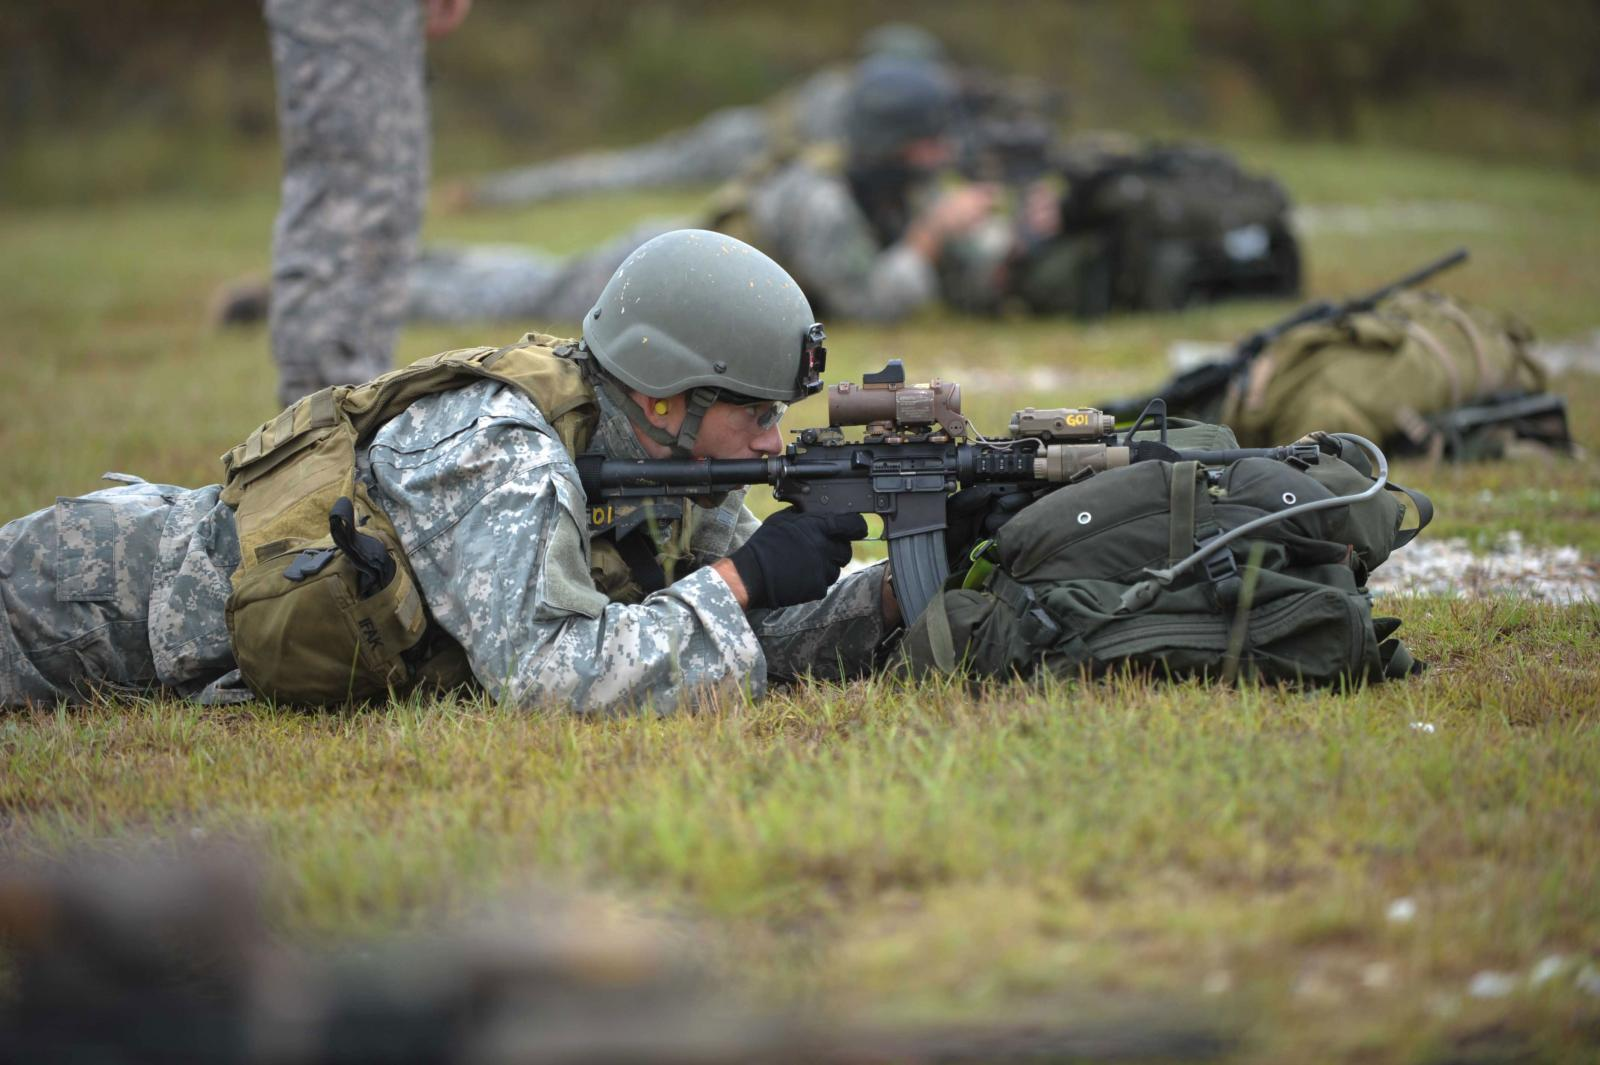 7th-special-forces-group-photo-hr.jpg